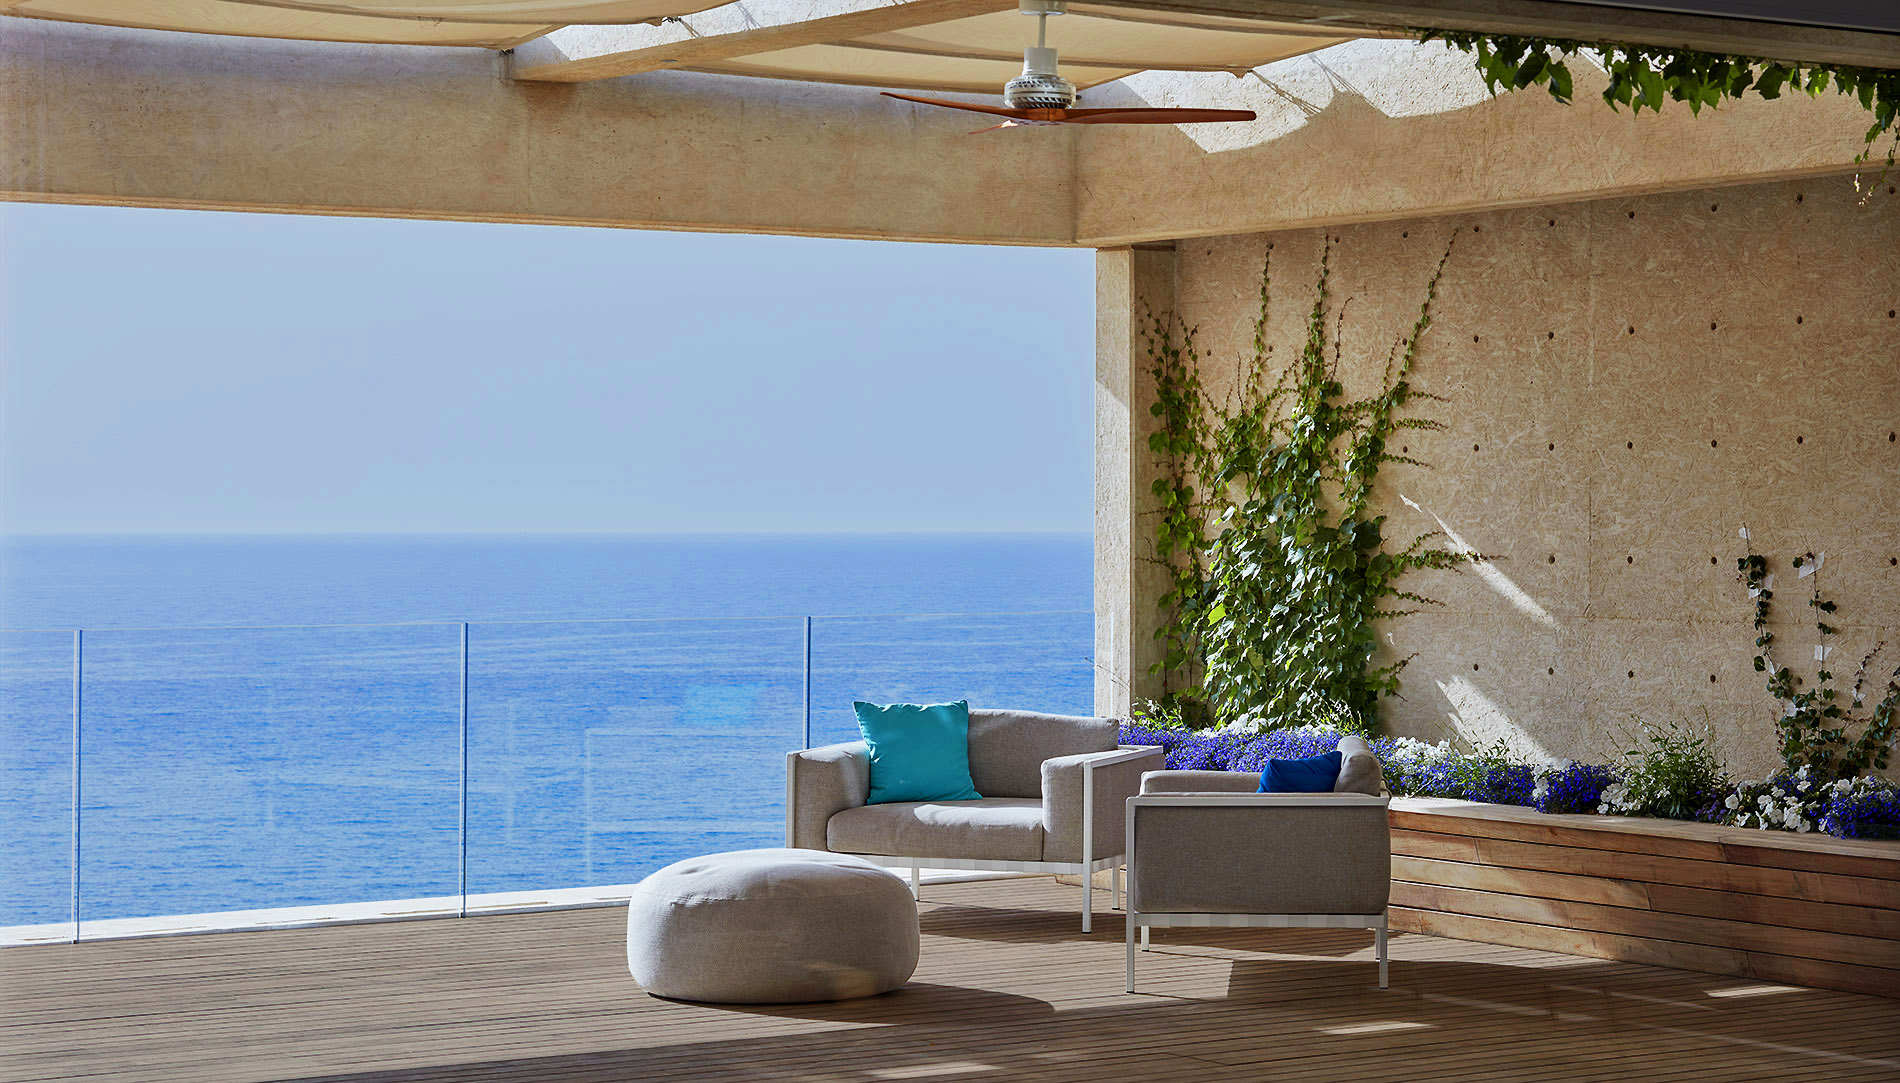 Luxury waterfront apartment terrace